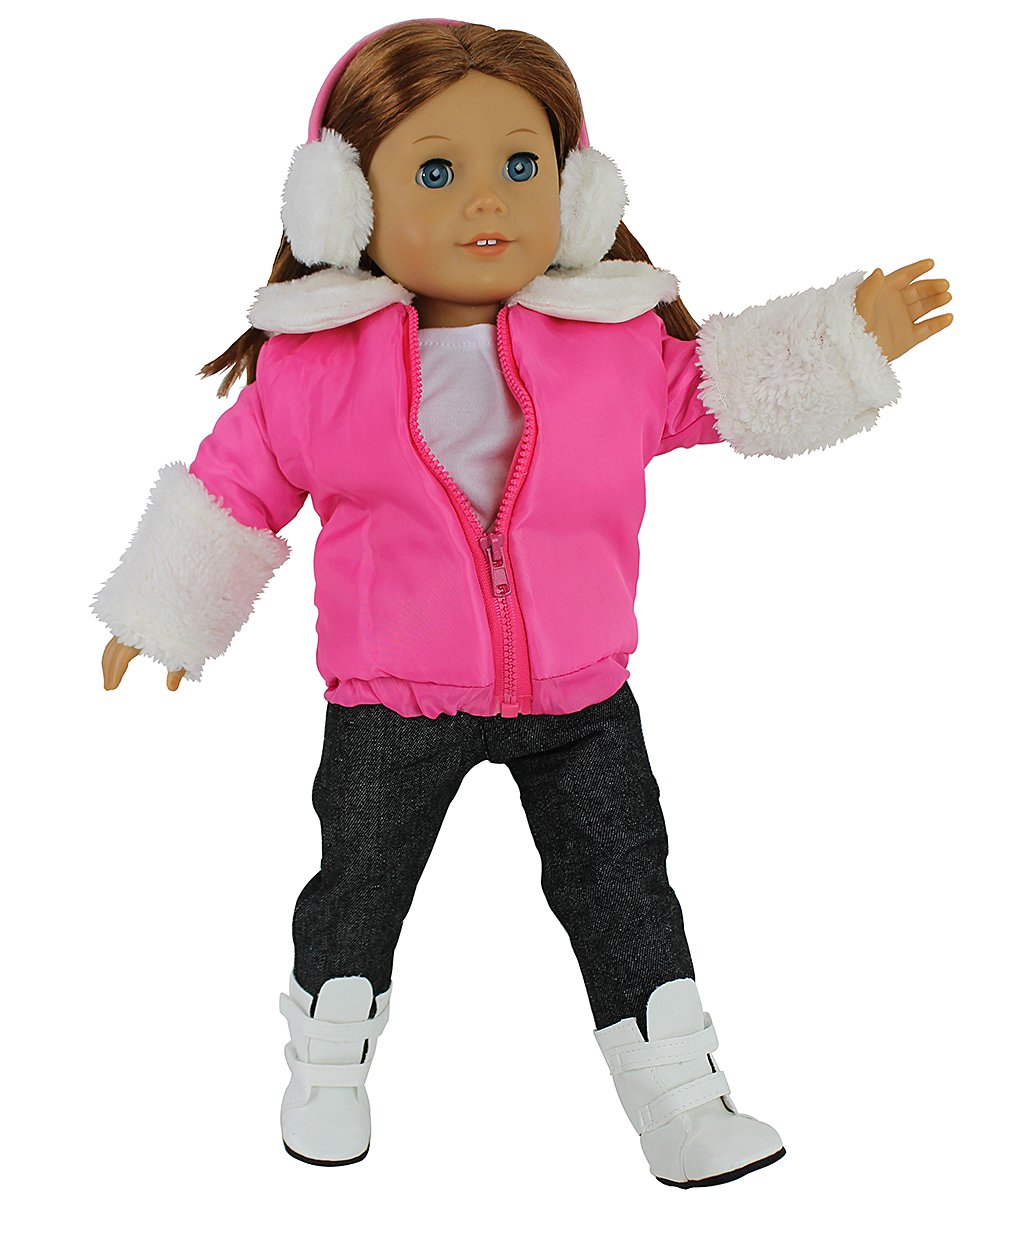 Dress Along Dolly Winter Snow Outfit for American Girl Dolls: 5pc Set w Jacket, Shirt, Jeans, Boots, and Earmuffs AMG-SMF